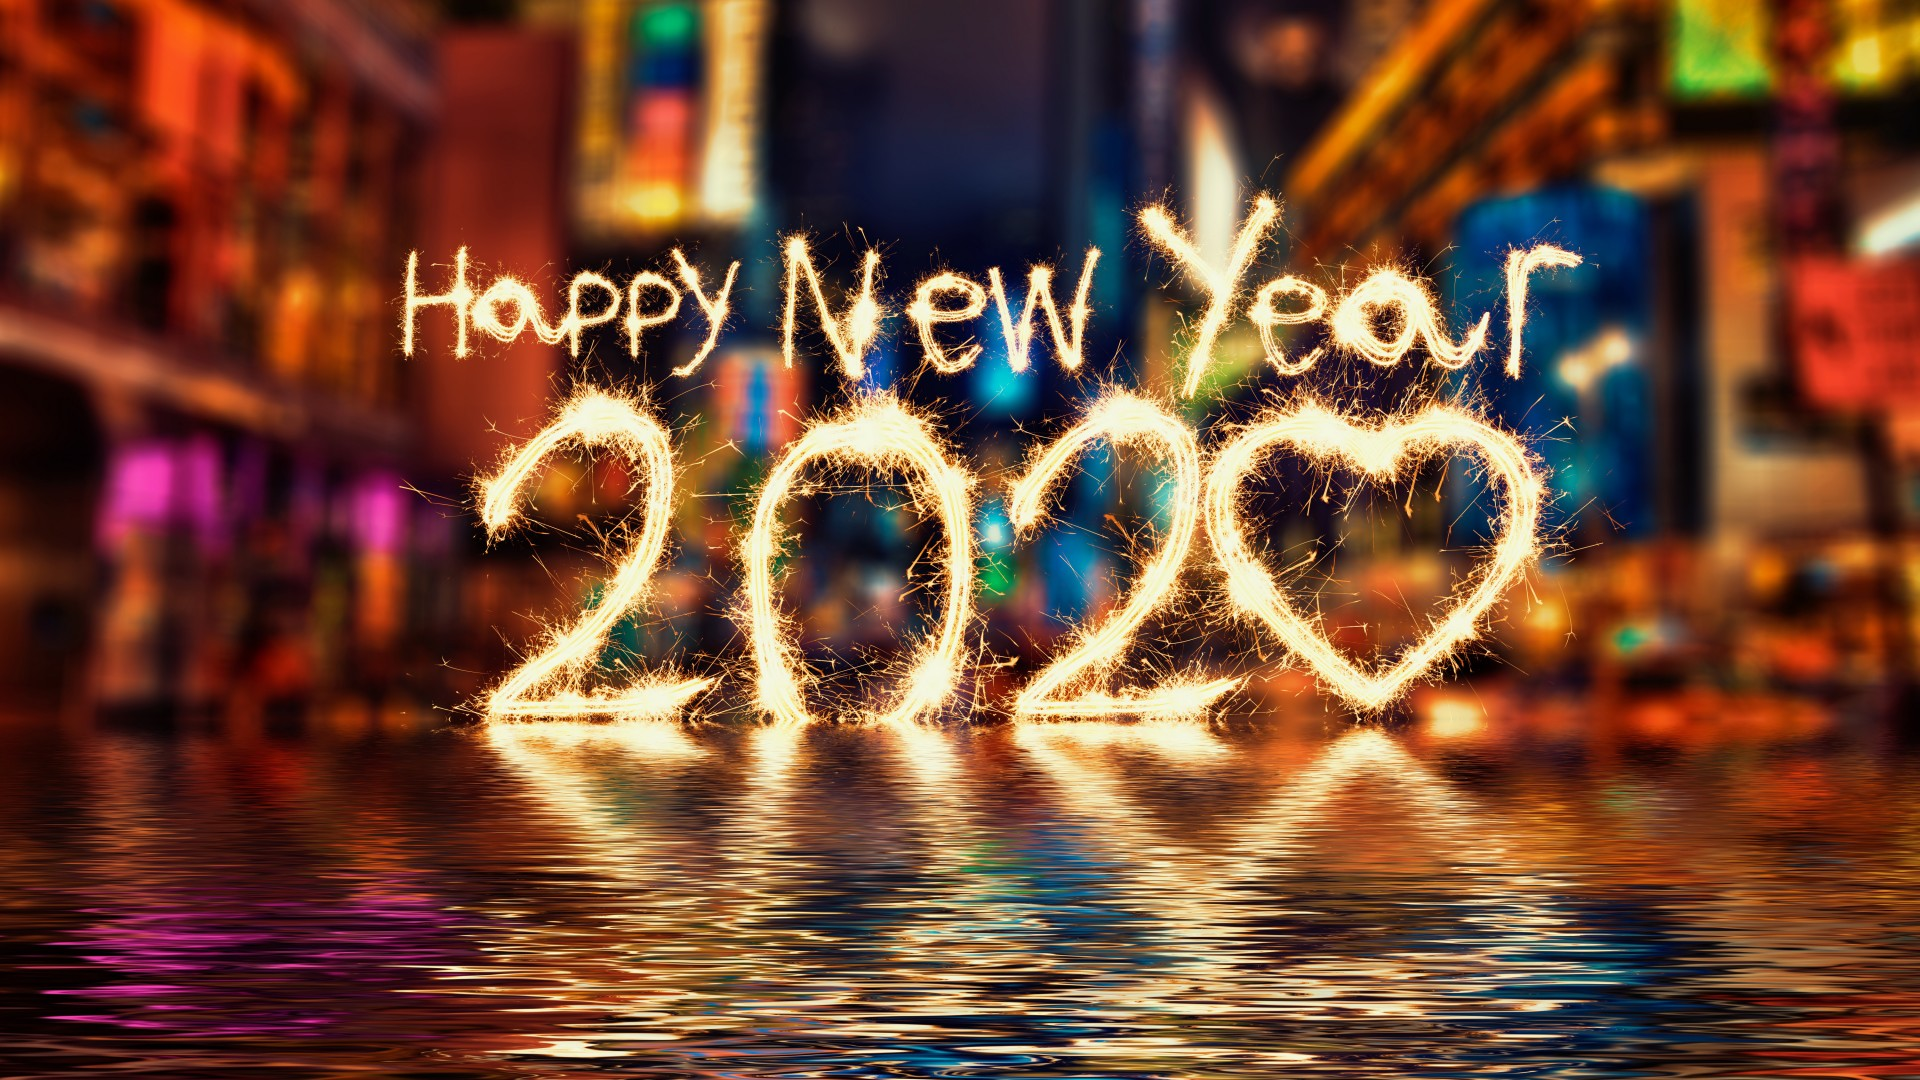 Happy New Year 2020 firework text background